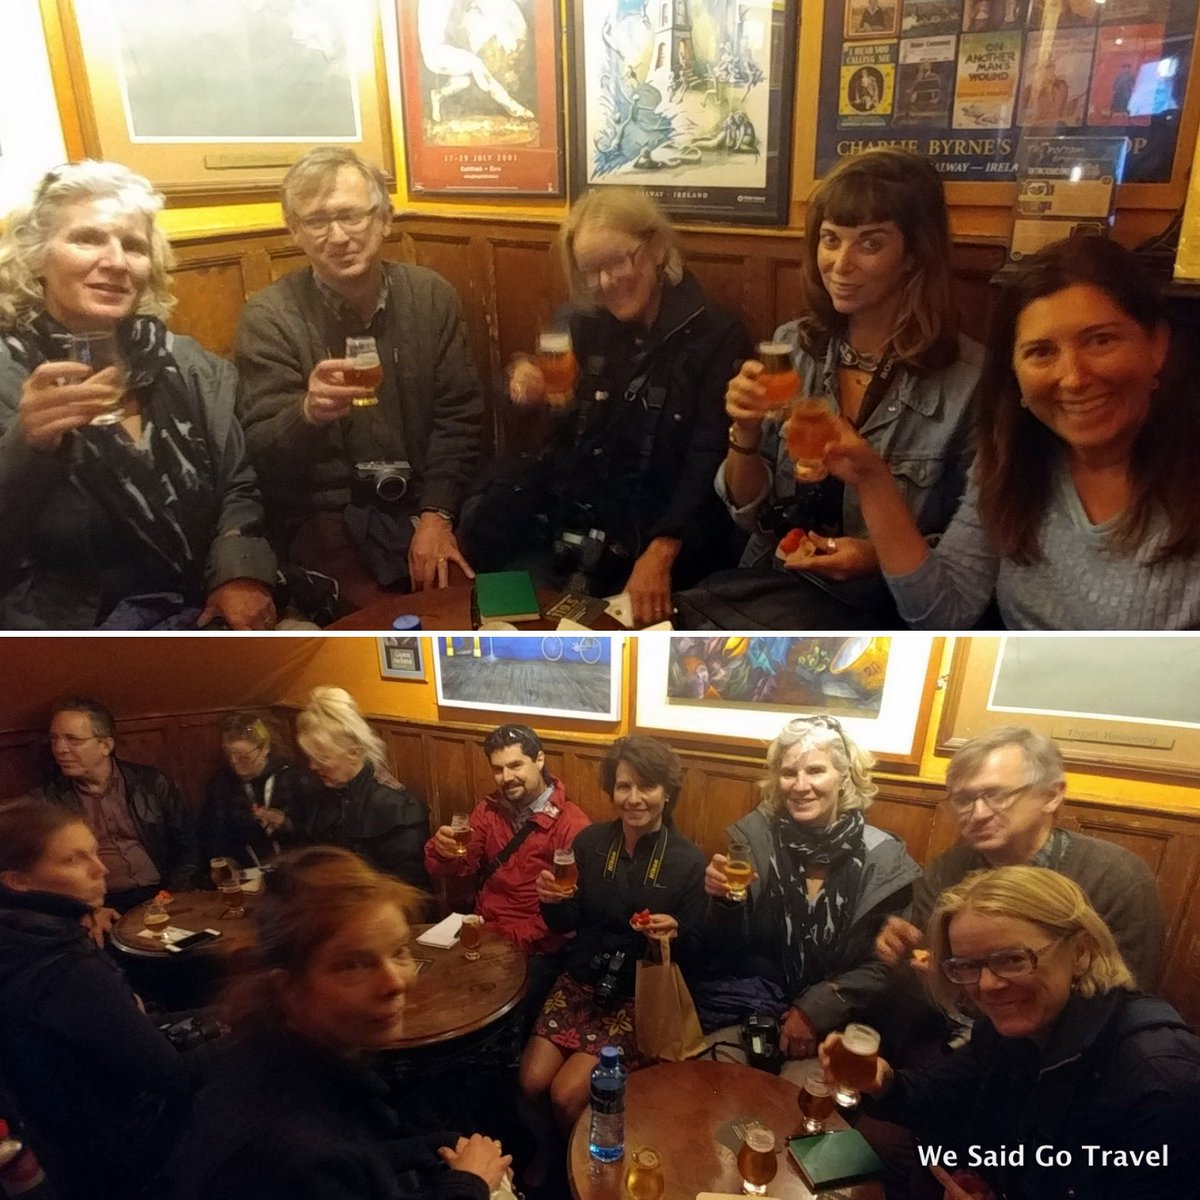 """test Twitter Media - Failte #Ireland! #tcireland #loveireland. The Galway #food and walking #tour """"Around the Market Place"""" at Tigh Neachtain for Galway Hooker https://t.co/PoAdrjbFCc"""